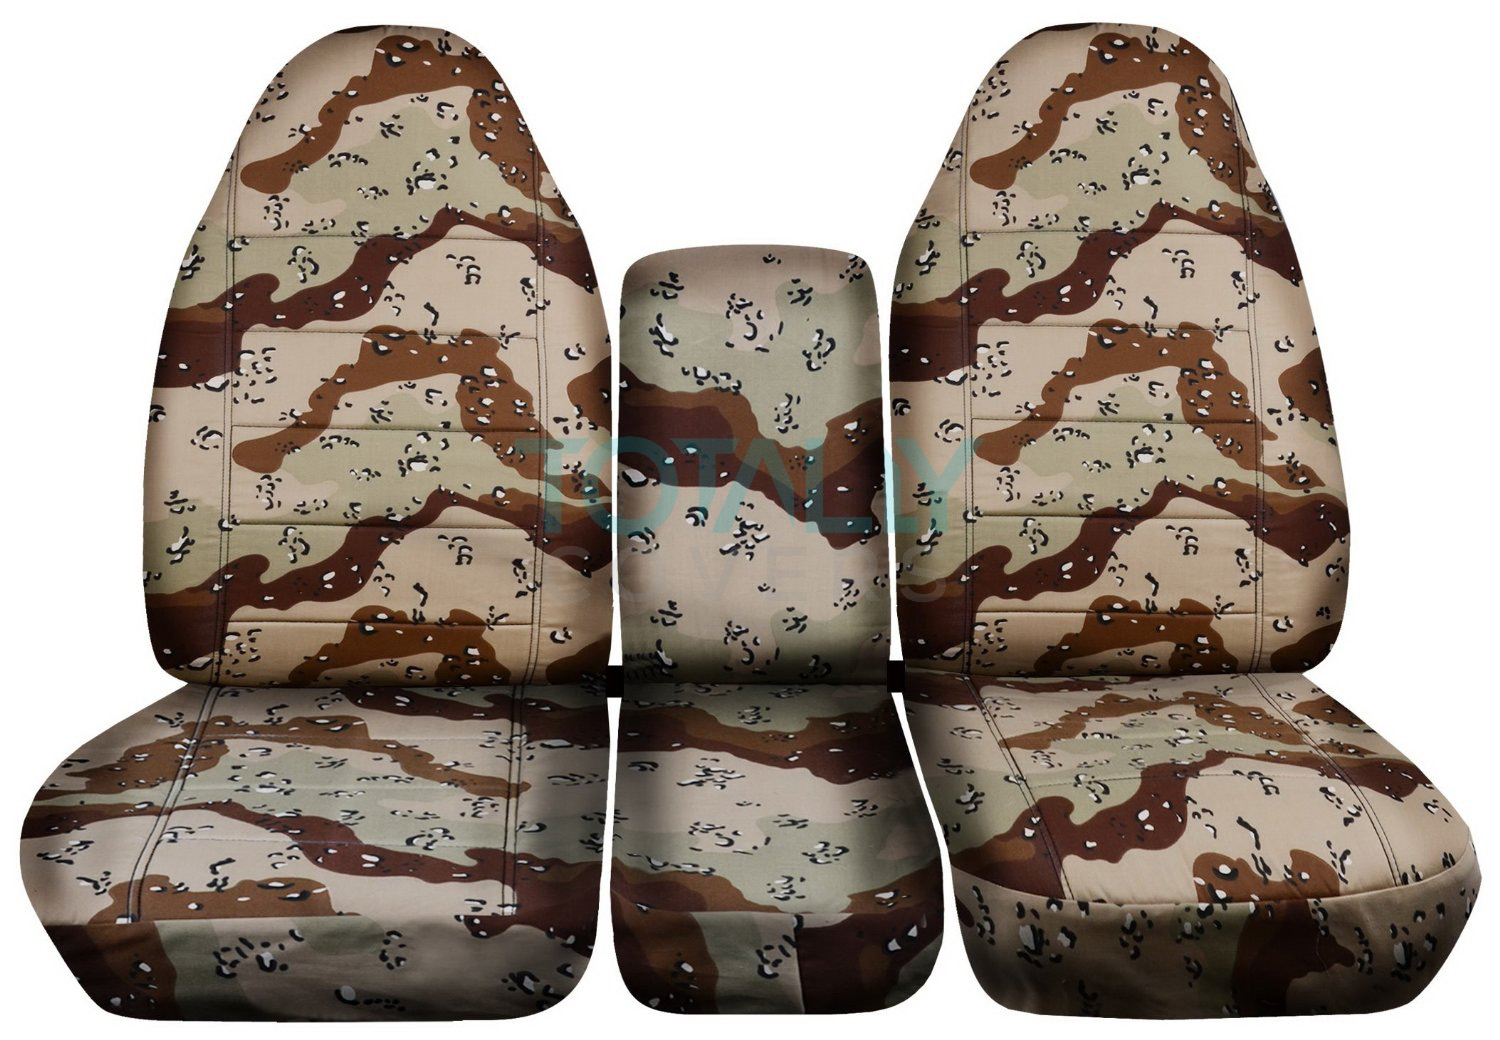 2003 Dodge Ram 1500 Seat Covers >> Camo Seat Covers For 2002 Dodge Ram 2500 | Brokeasshome.com